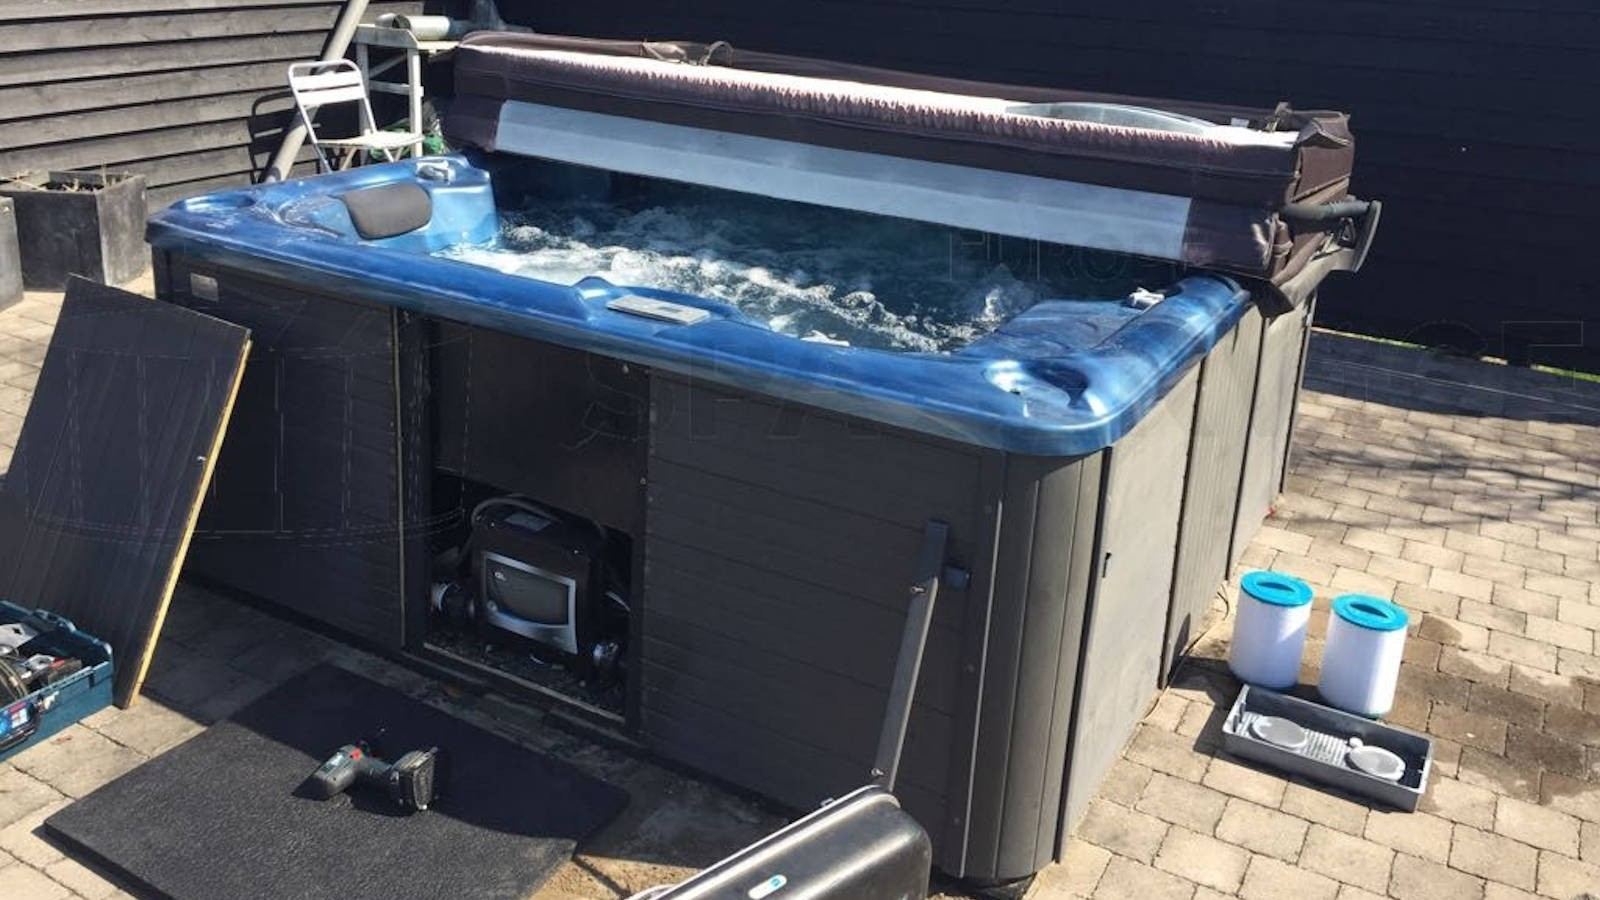 Ozonator en circulatiepomp vervangen van een Bubbelkoning Long Beach spa in Ouddorp